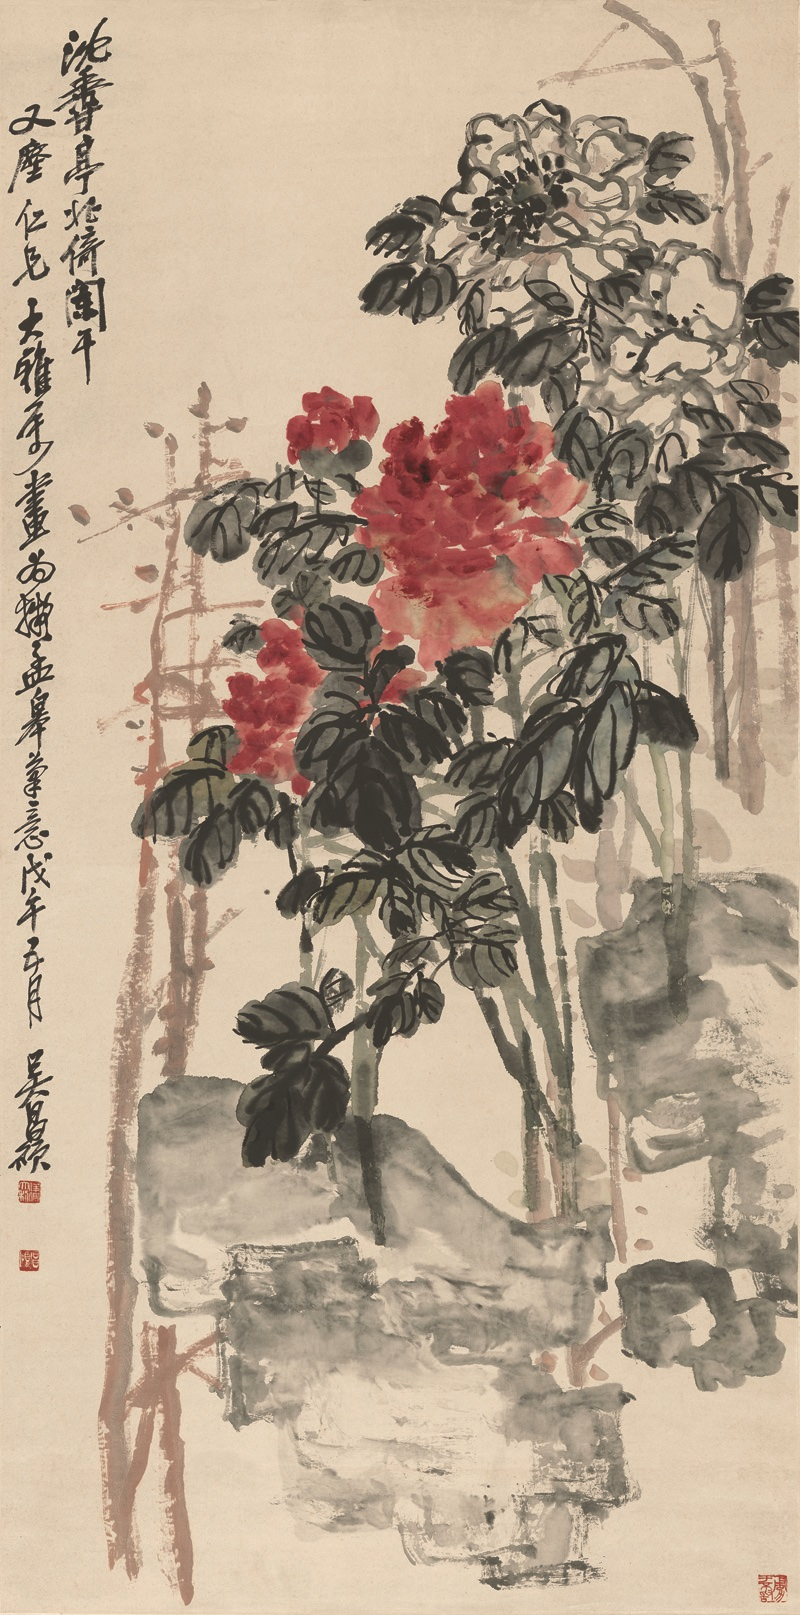 Wu Changshuo | Chinese Painting | China Online Museum Qing Dynasty Art